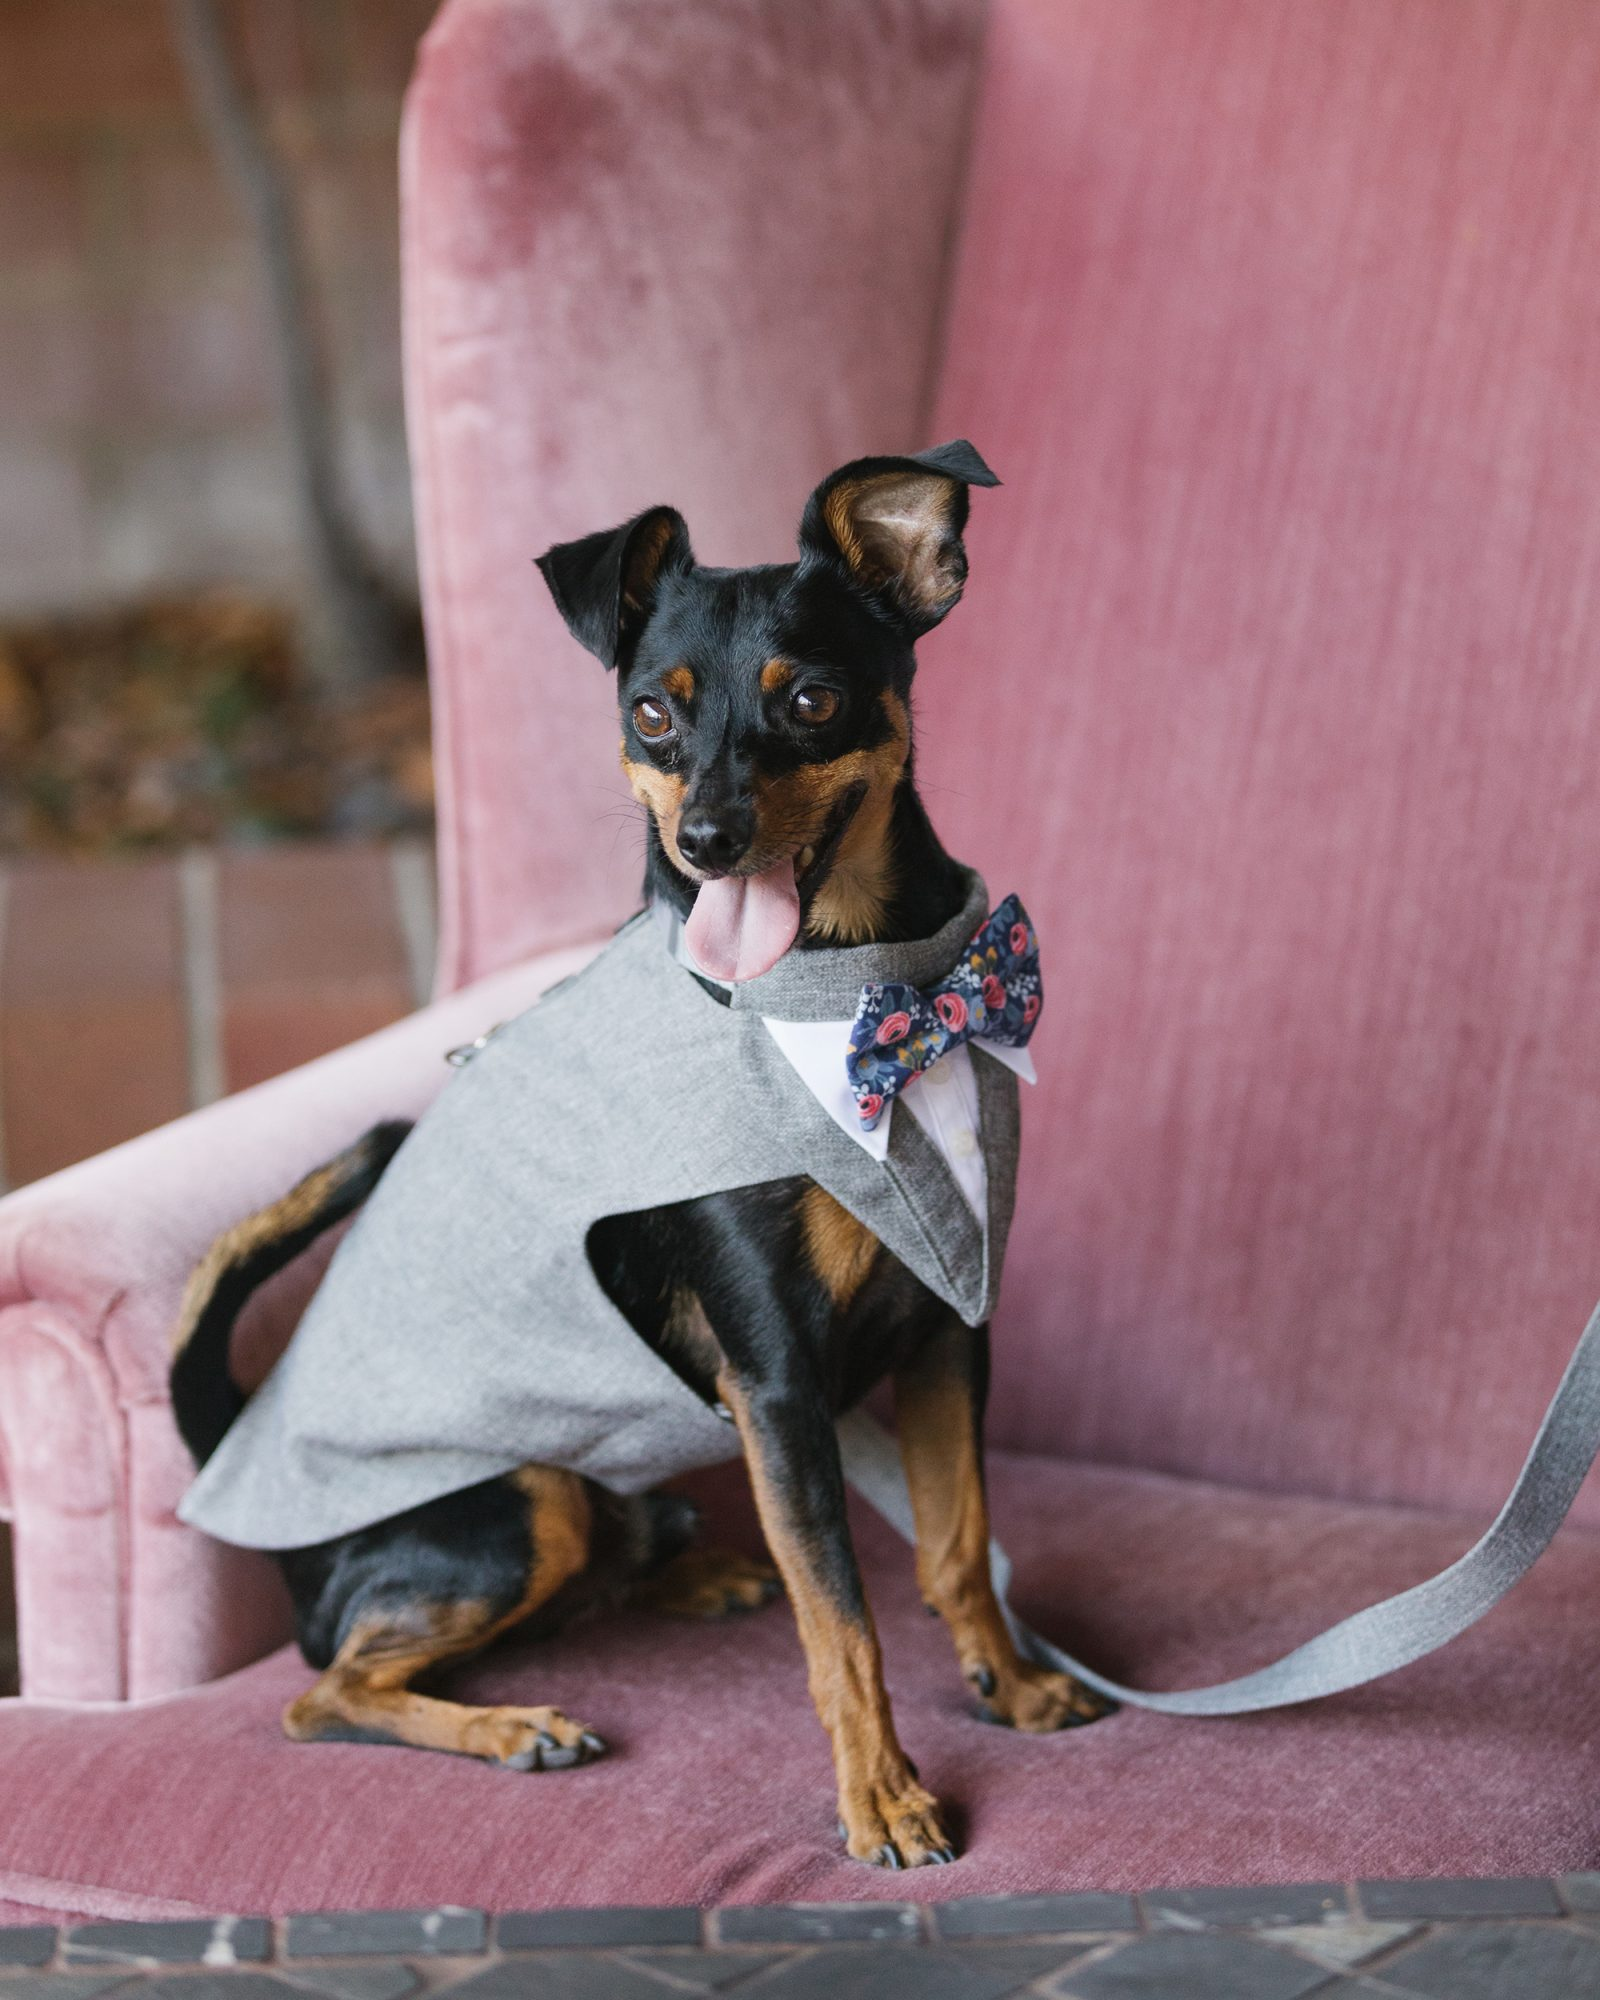 shelana kevin wedding dog in gray tuxedo and floral bow tie